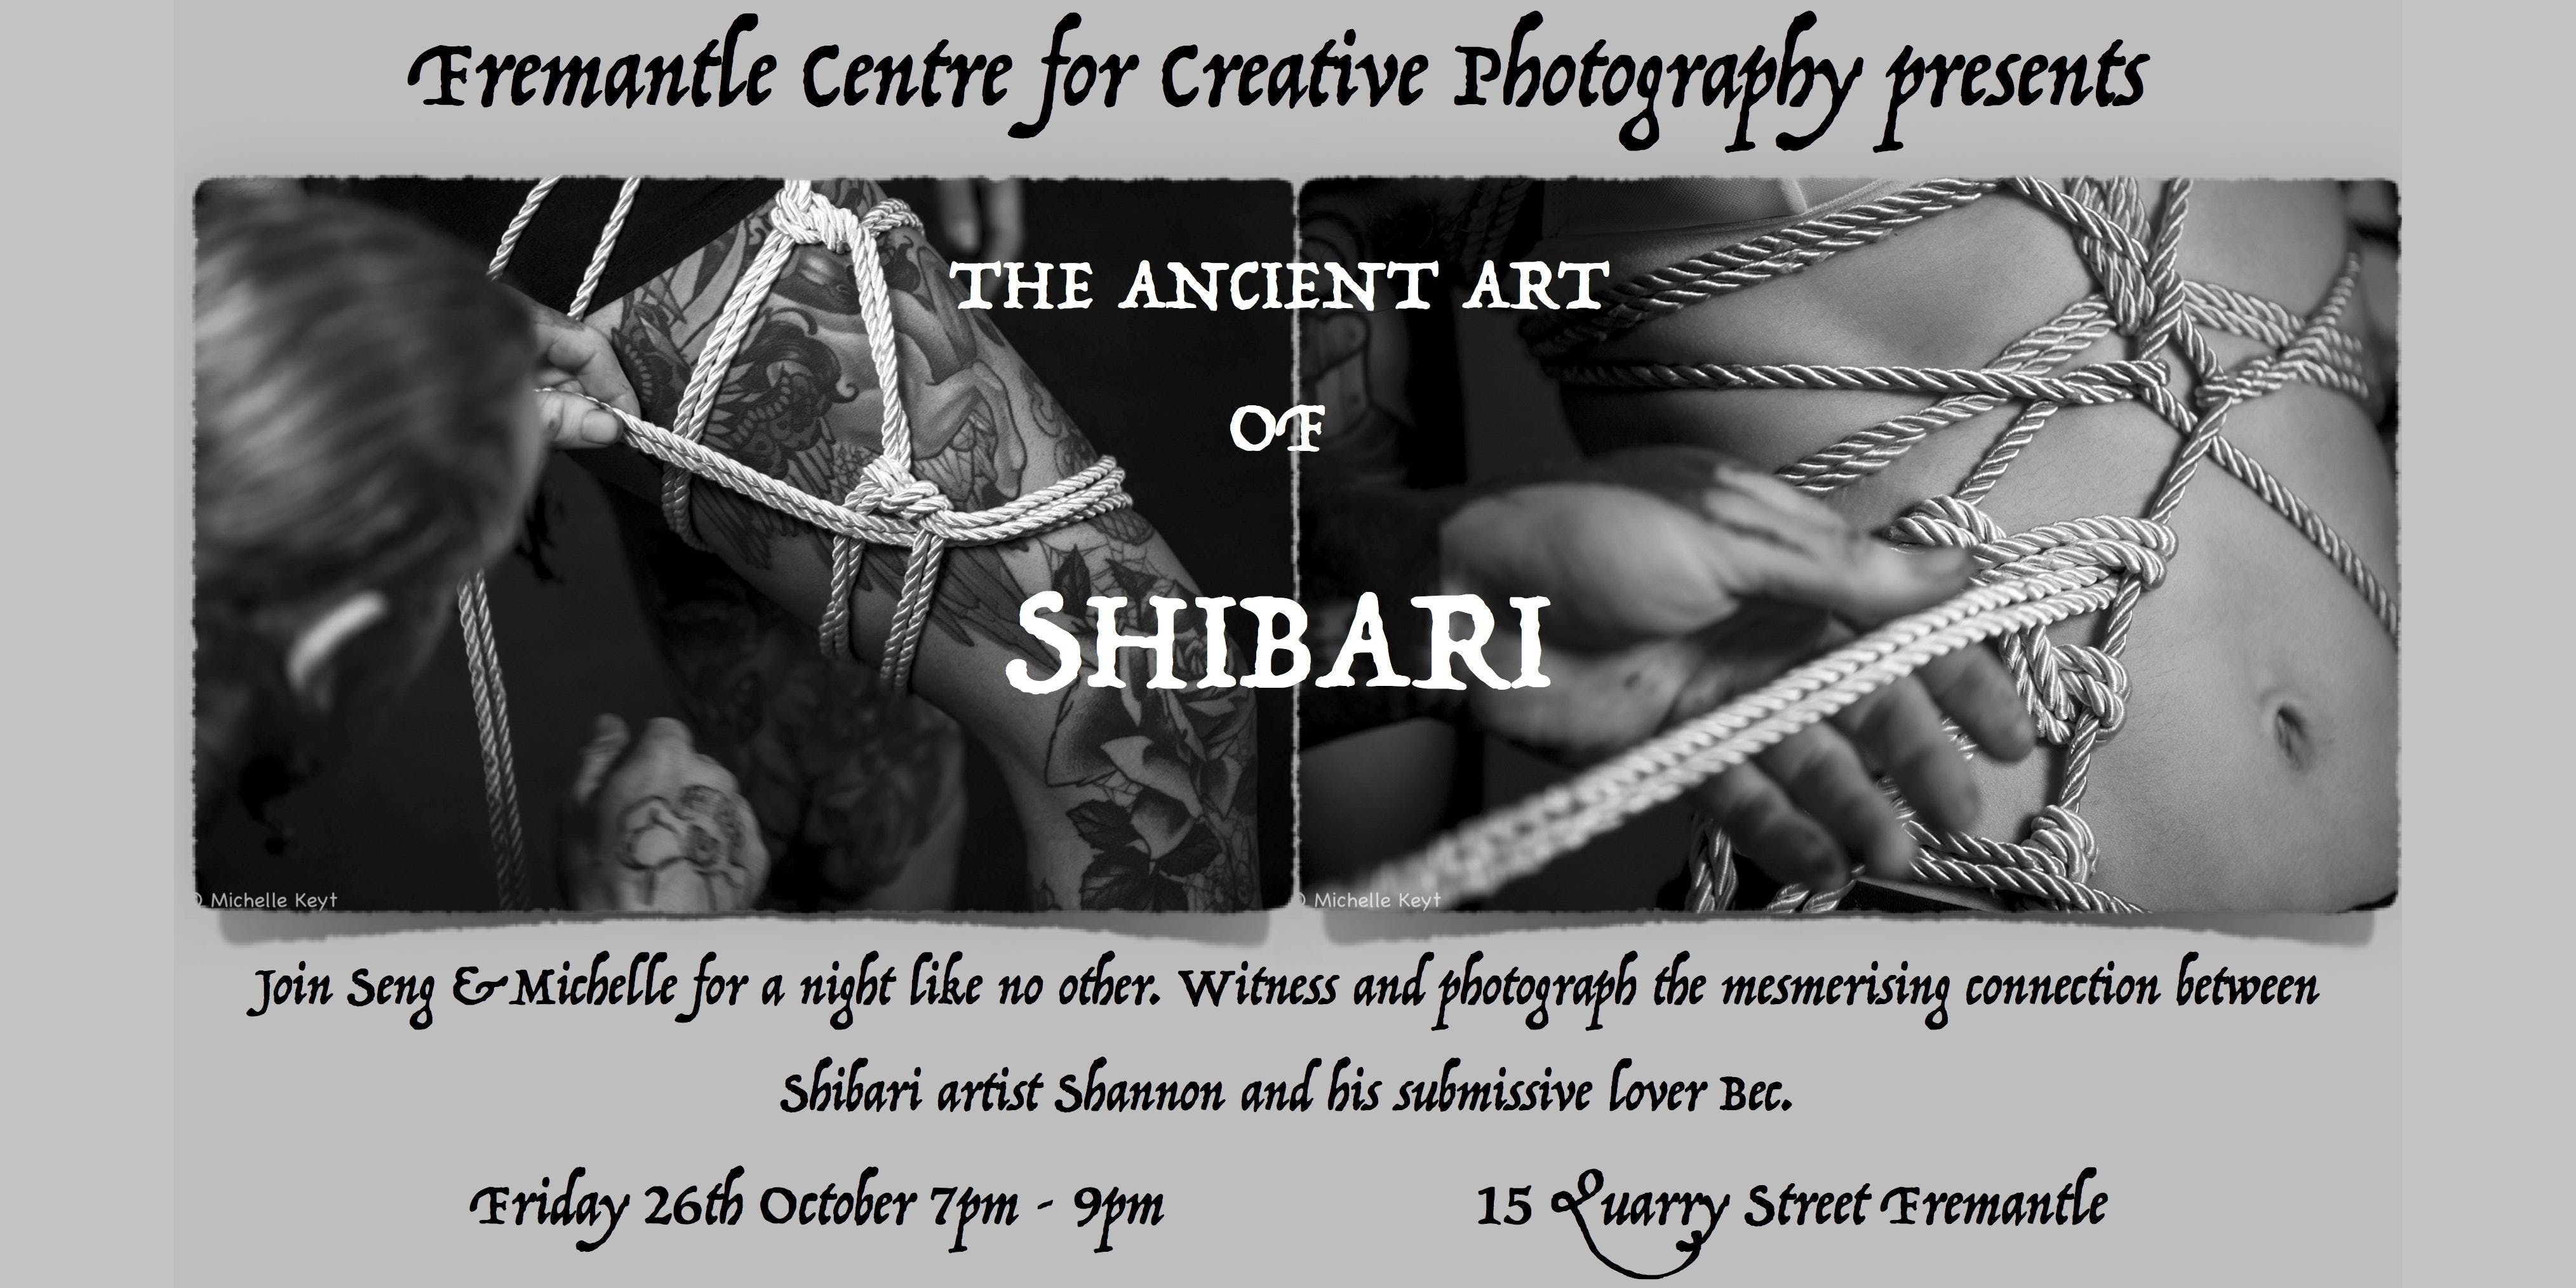 The Ancient & Erotic Art of Shibari